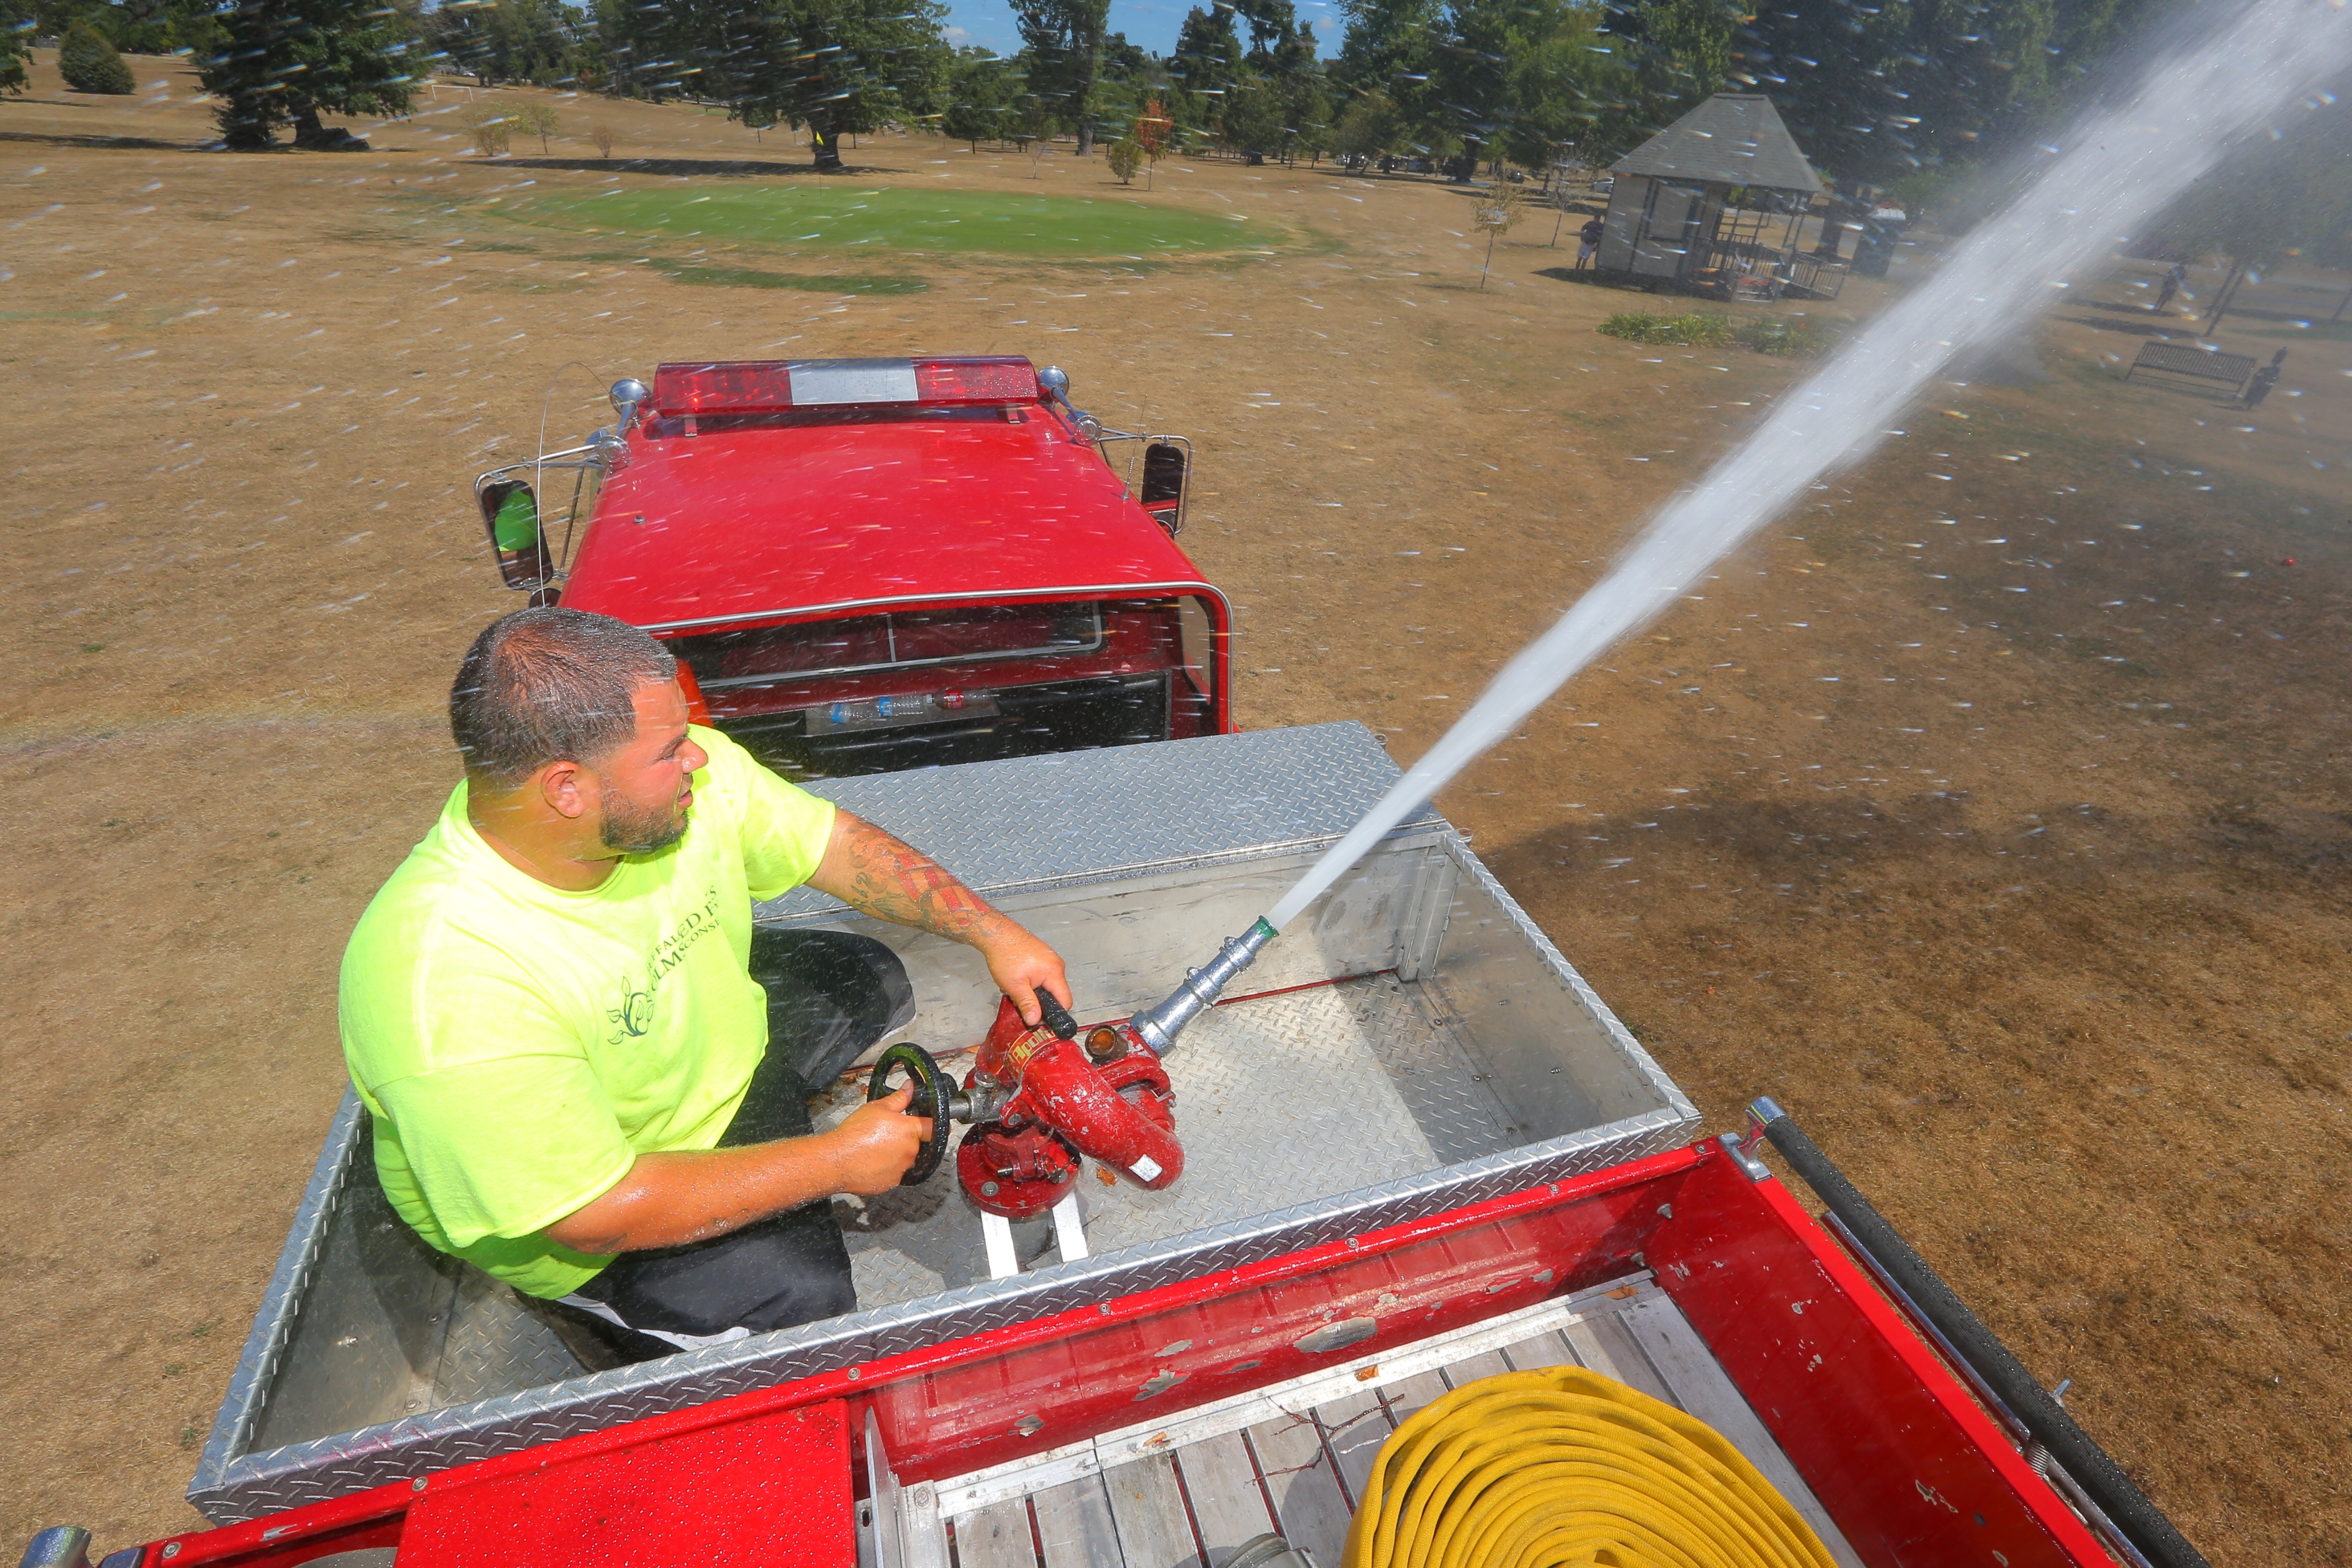 Olmsted Parks worker Jimmy Rodriguez sprays water from a pumper fire truck to water the tees and greens at the Delaware Park Golf Course. (John Hickey/Buffalo News)